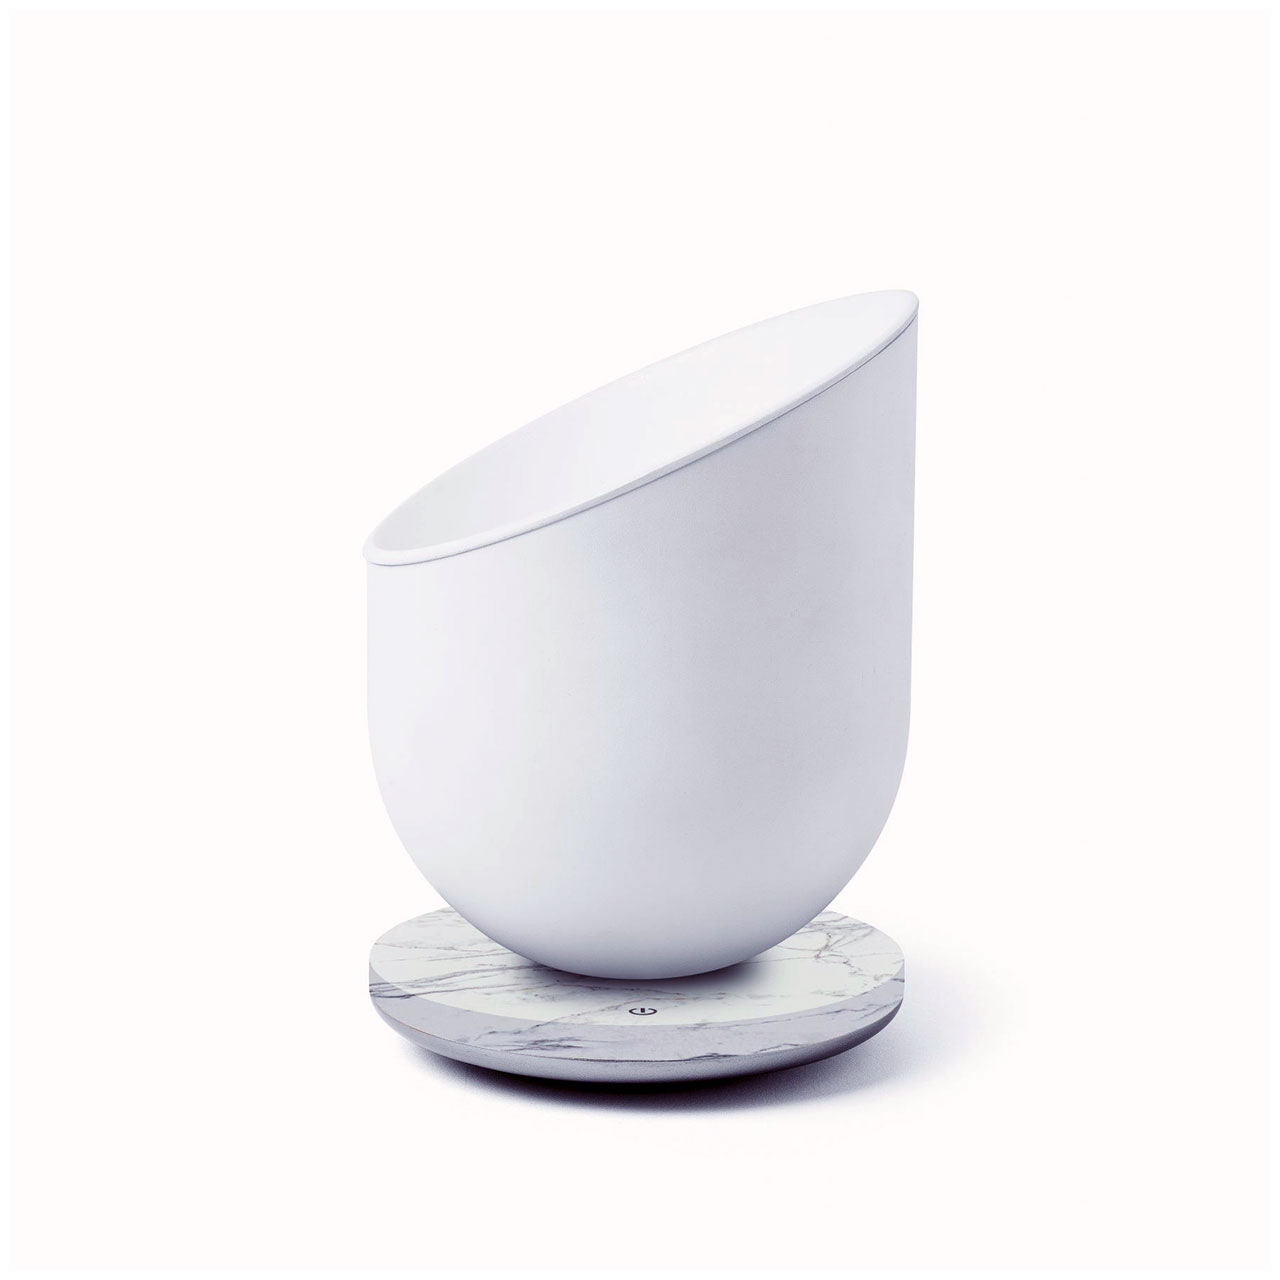 LEXON Miami Scent Aroma Diffuser Alu/White Marble | the design gift shop